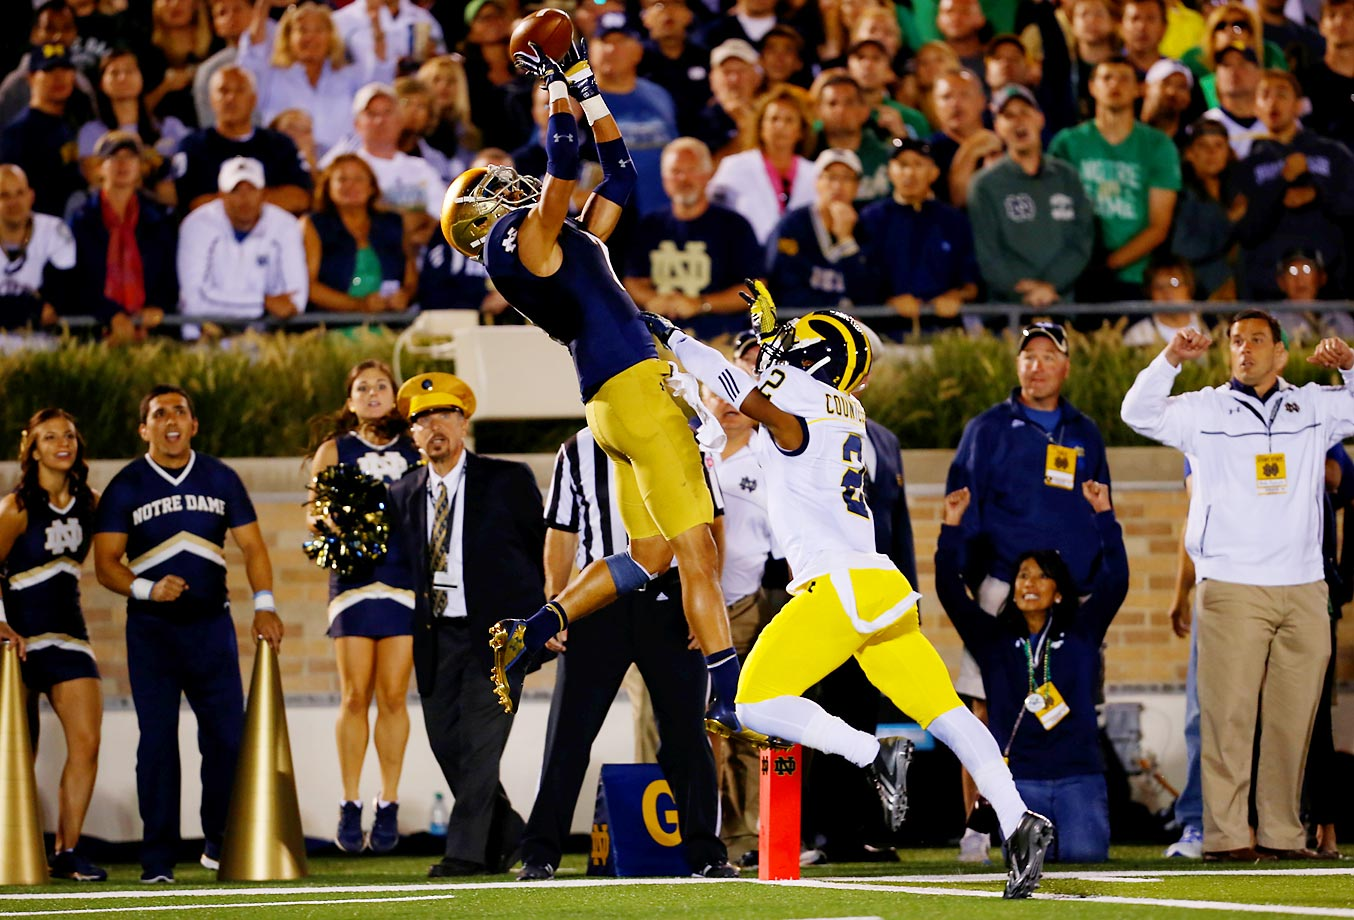 Notre Dame's receiver William Fuller catches a touchdown pass in front of Michigan's Blake Countess.